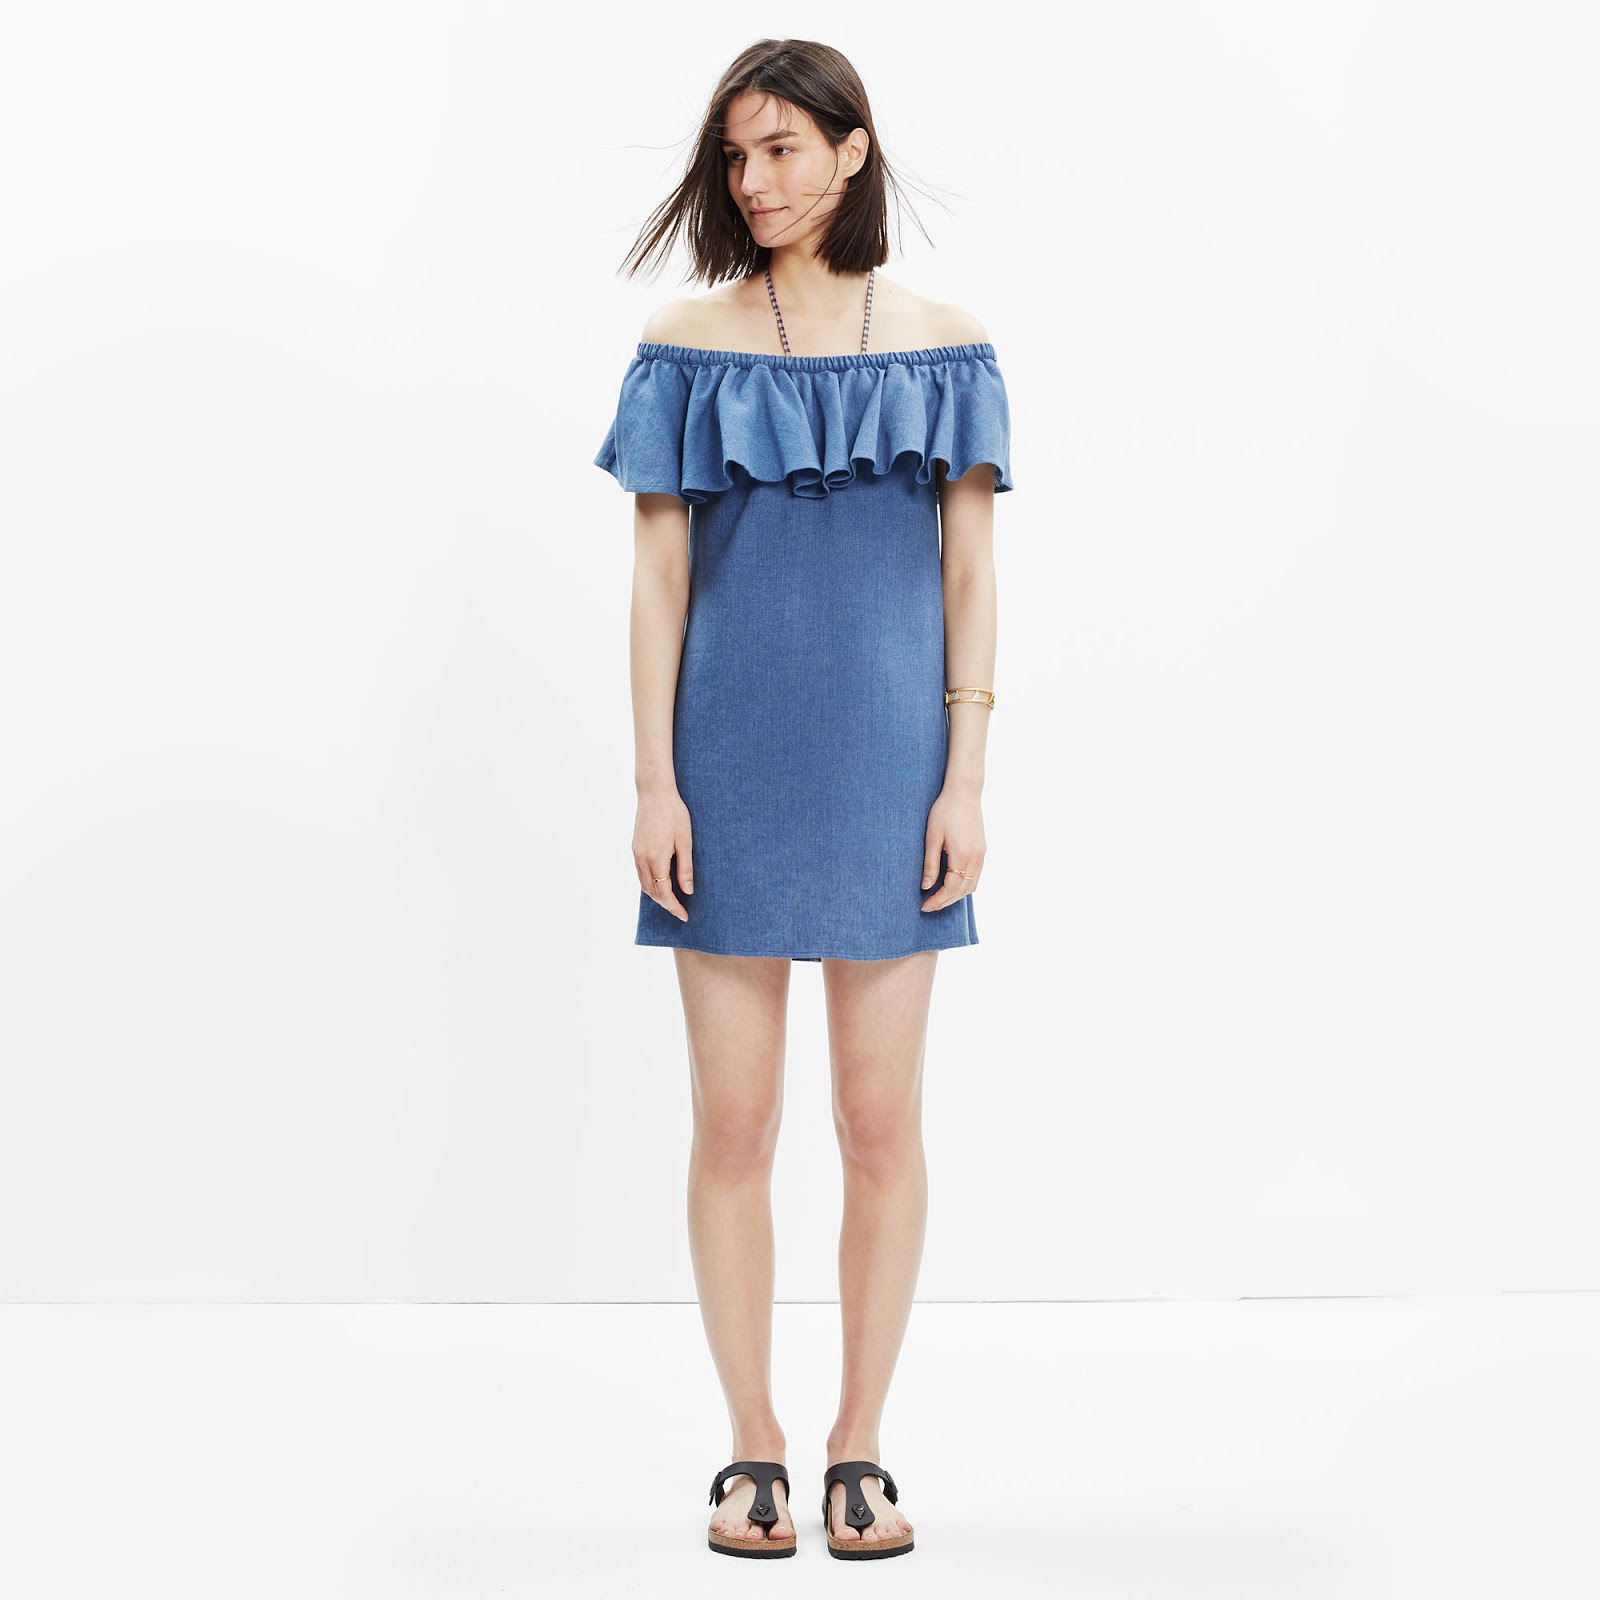 Madewell Rio dress